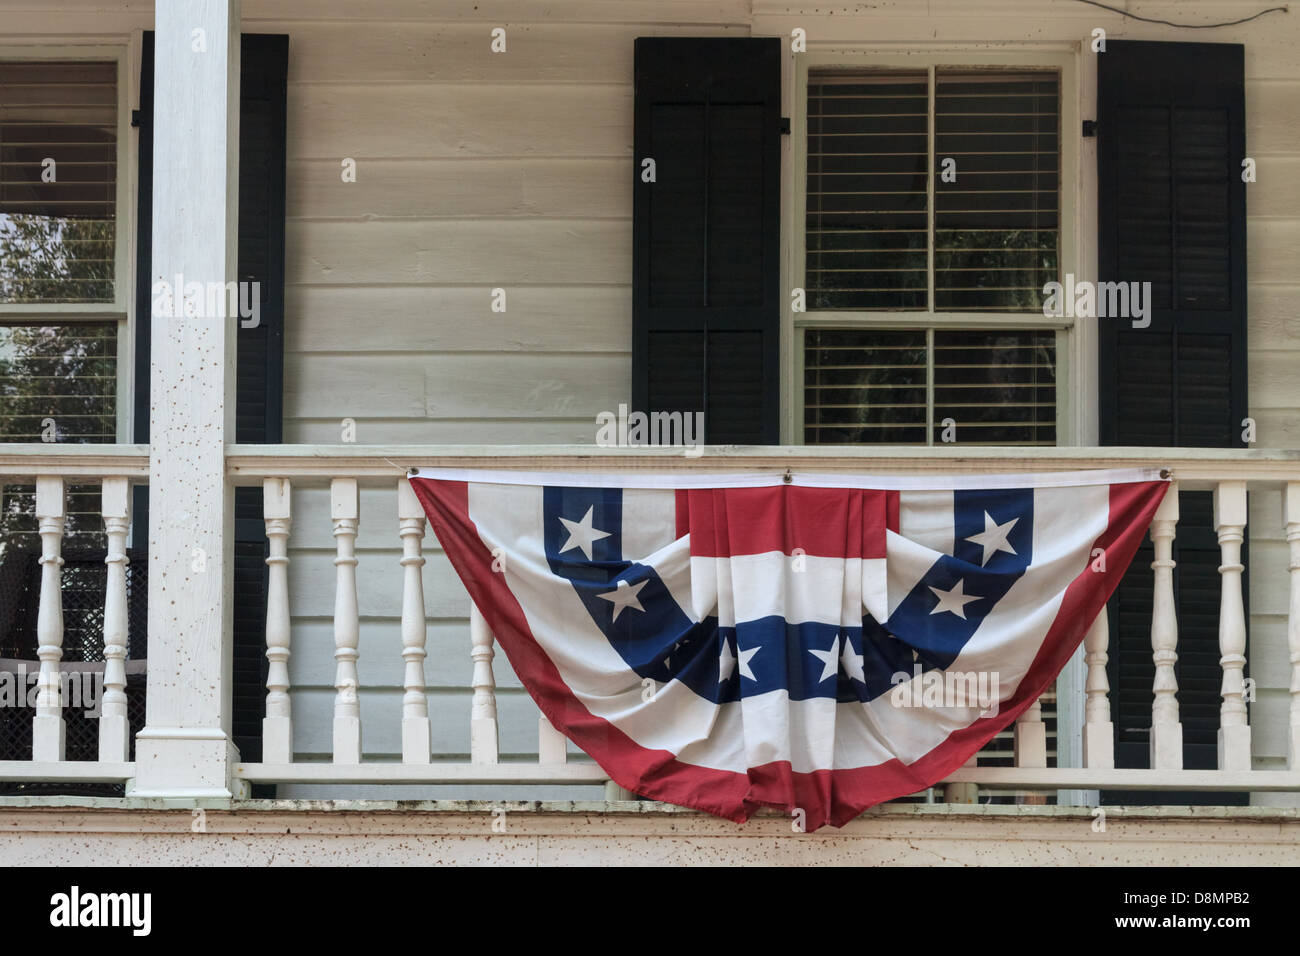 A shabby southern states hut and house with a flag in american colors - Stock Image